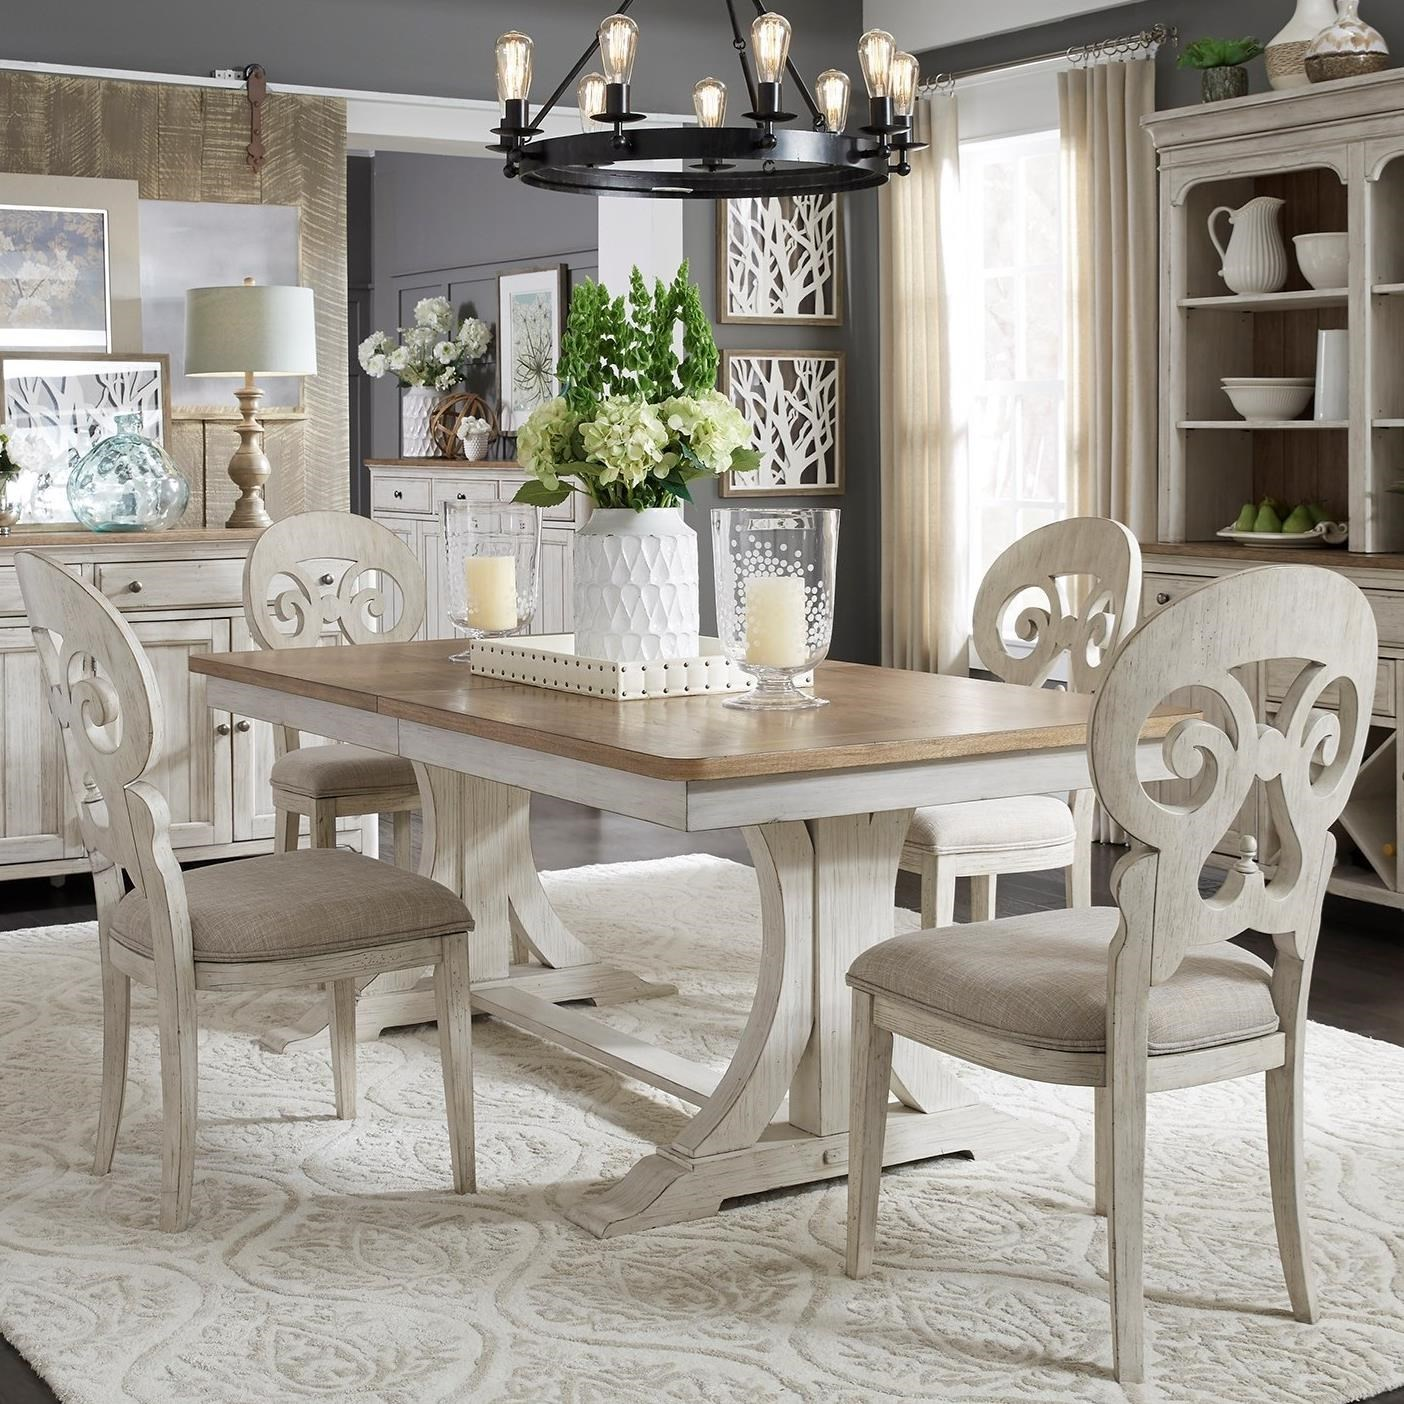 Image of: Liberty Furniture Farmhouse Reimagined Relaxed Vintage 5 Piece Trestle Table Set Royal Furniture Dining 5 Piece Sets